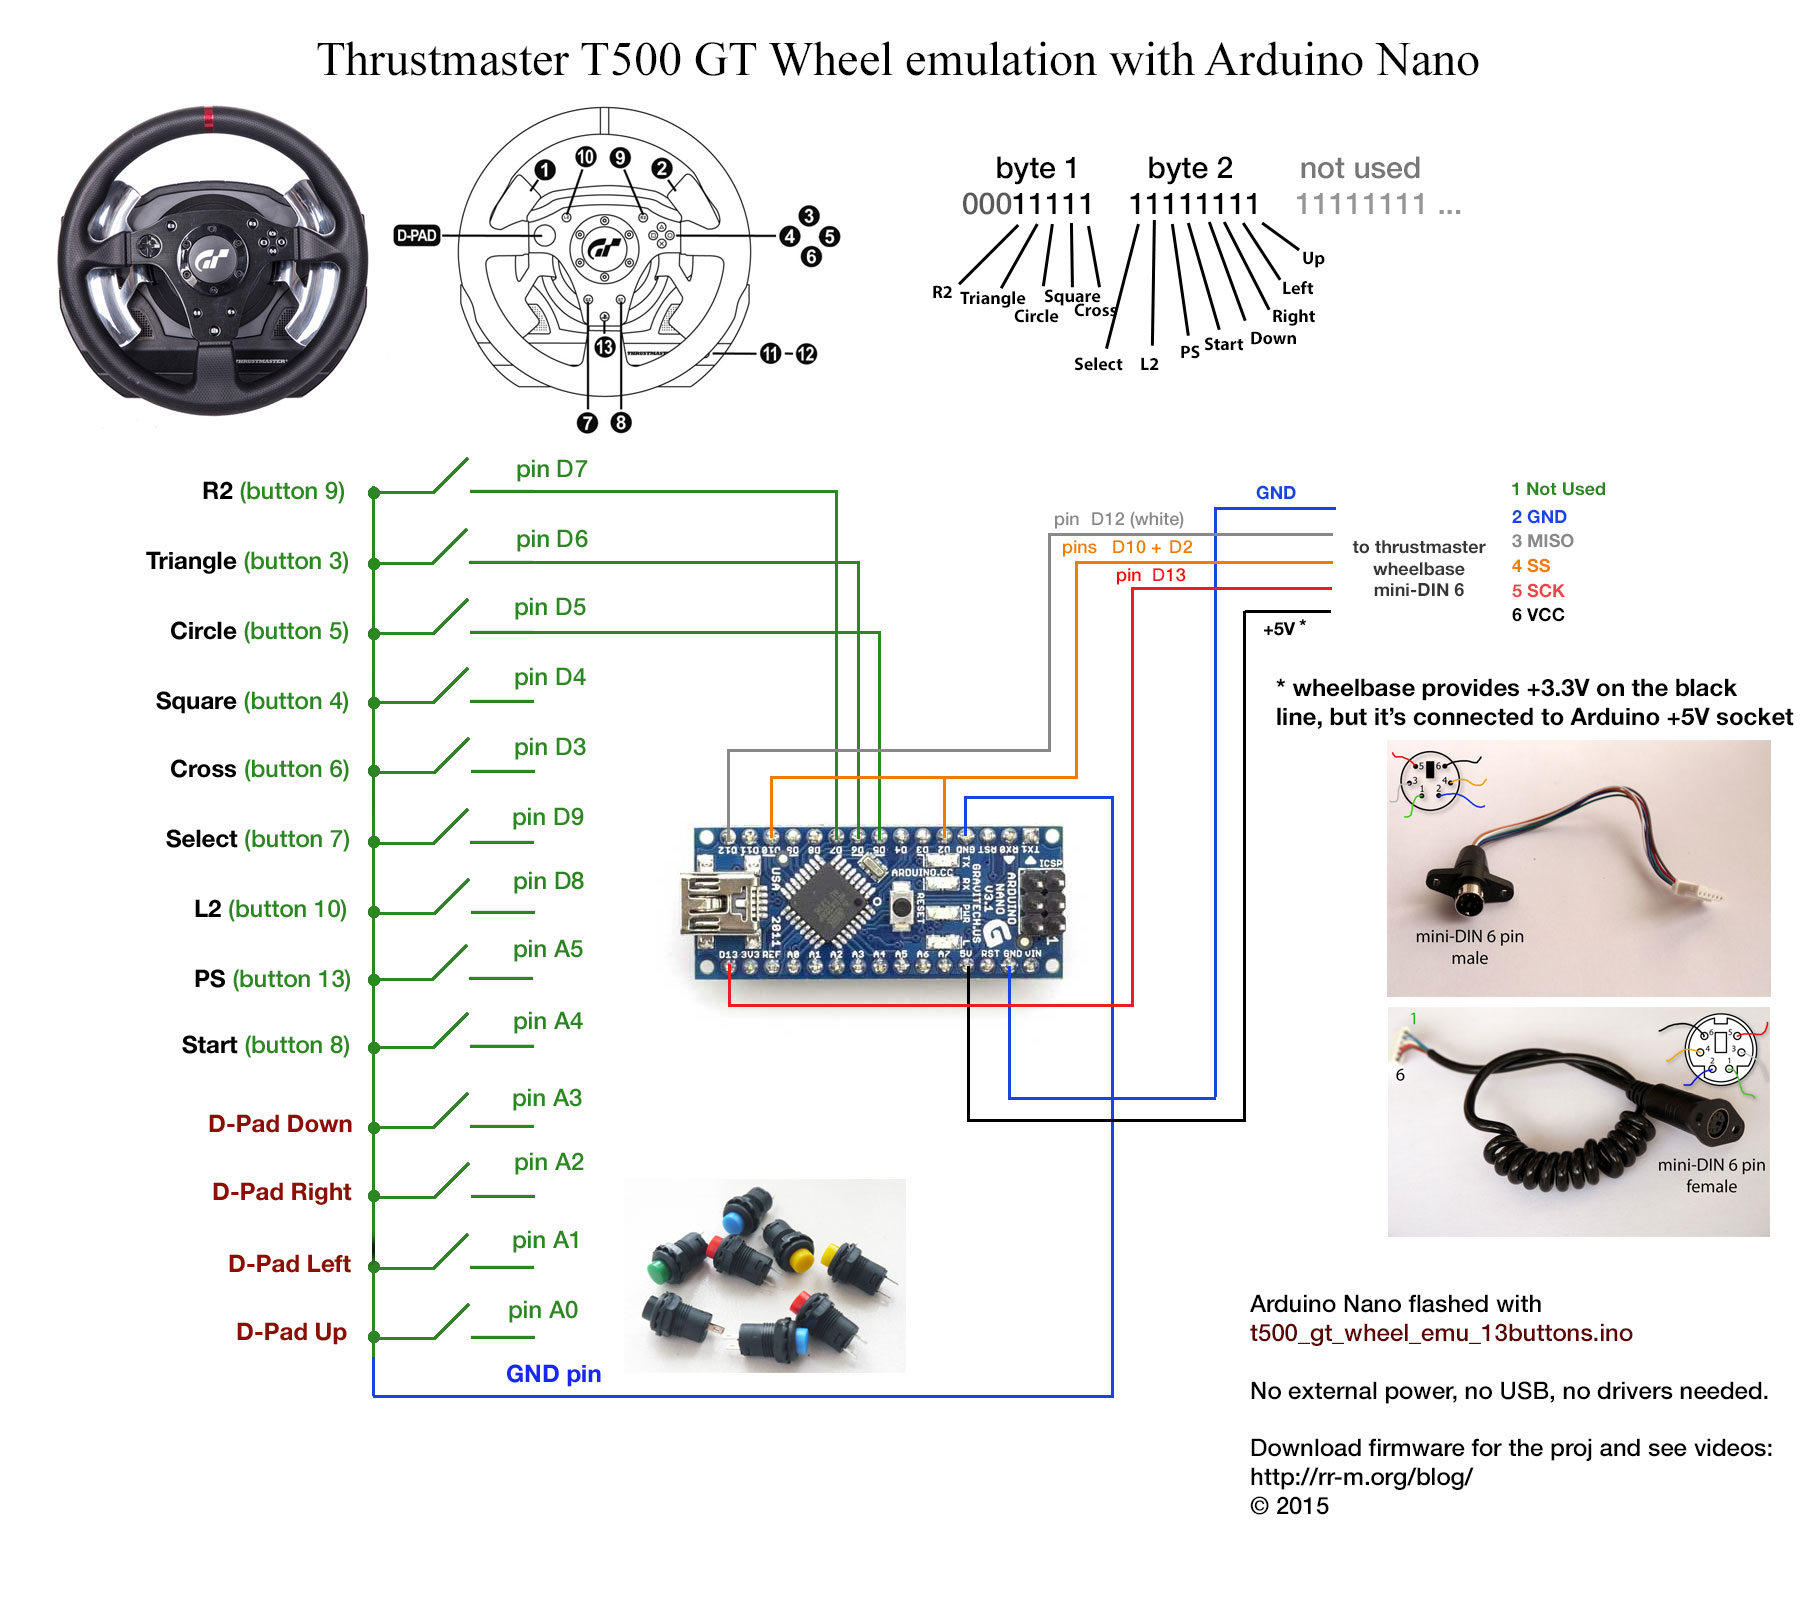 hight resolution of emulating thrustmaster t500 gt wheel electronics with 2006 ford mustang gt shaker 500 wiring diagram